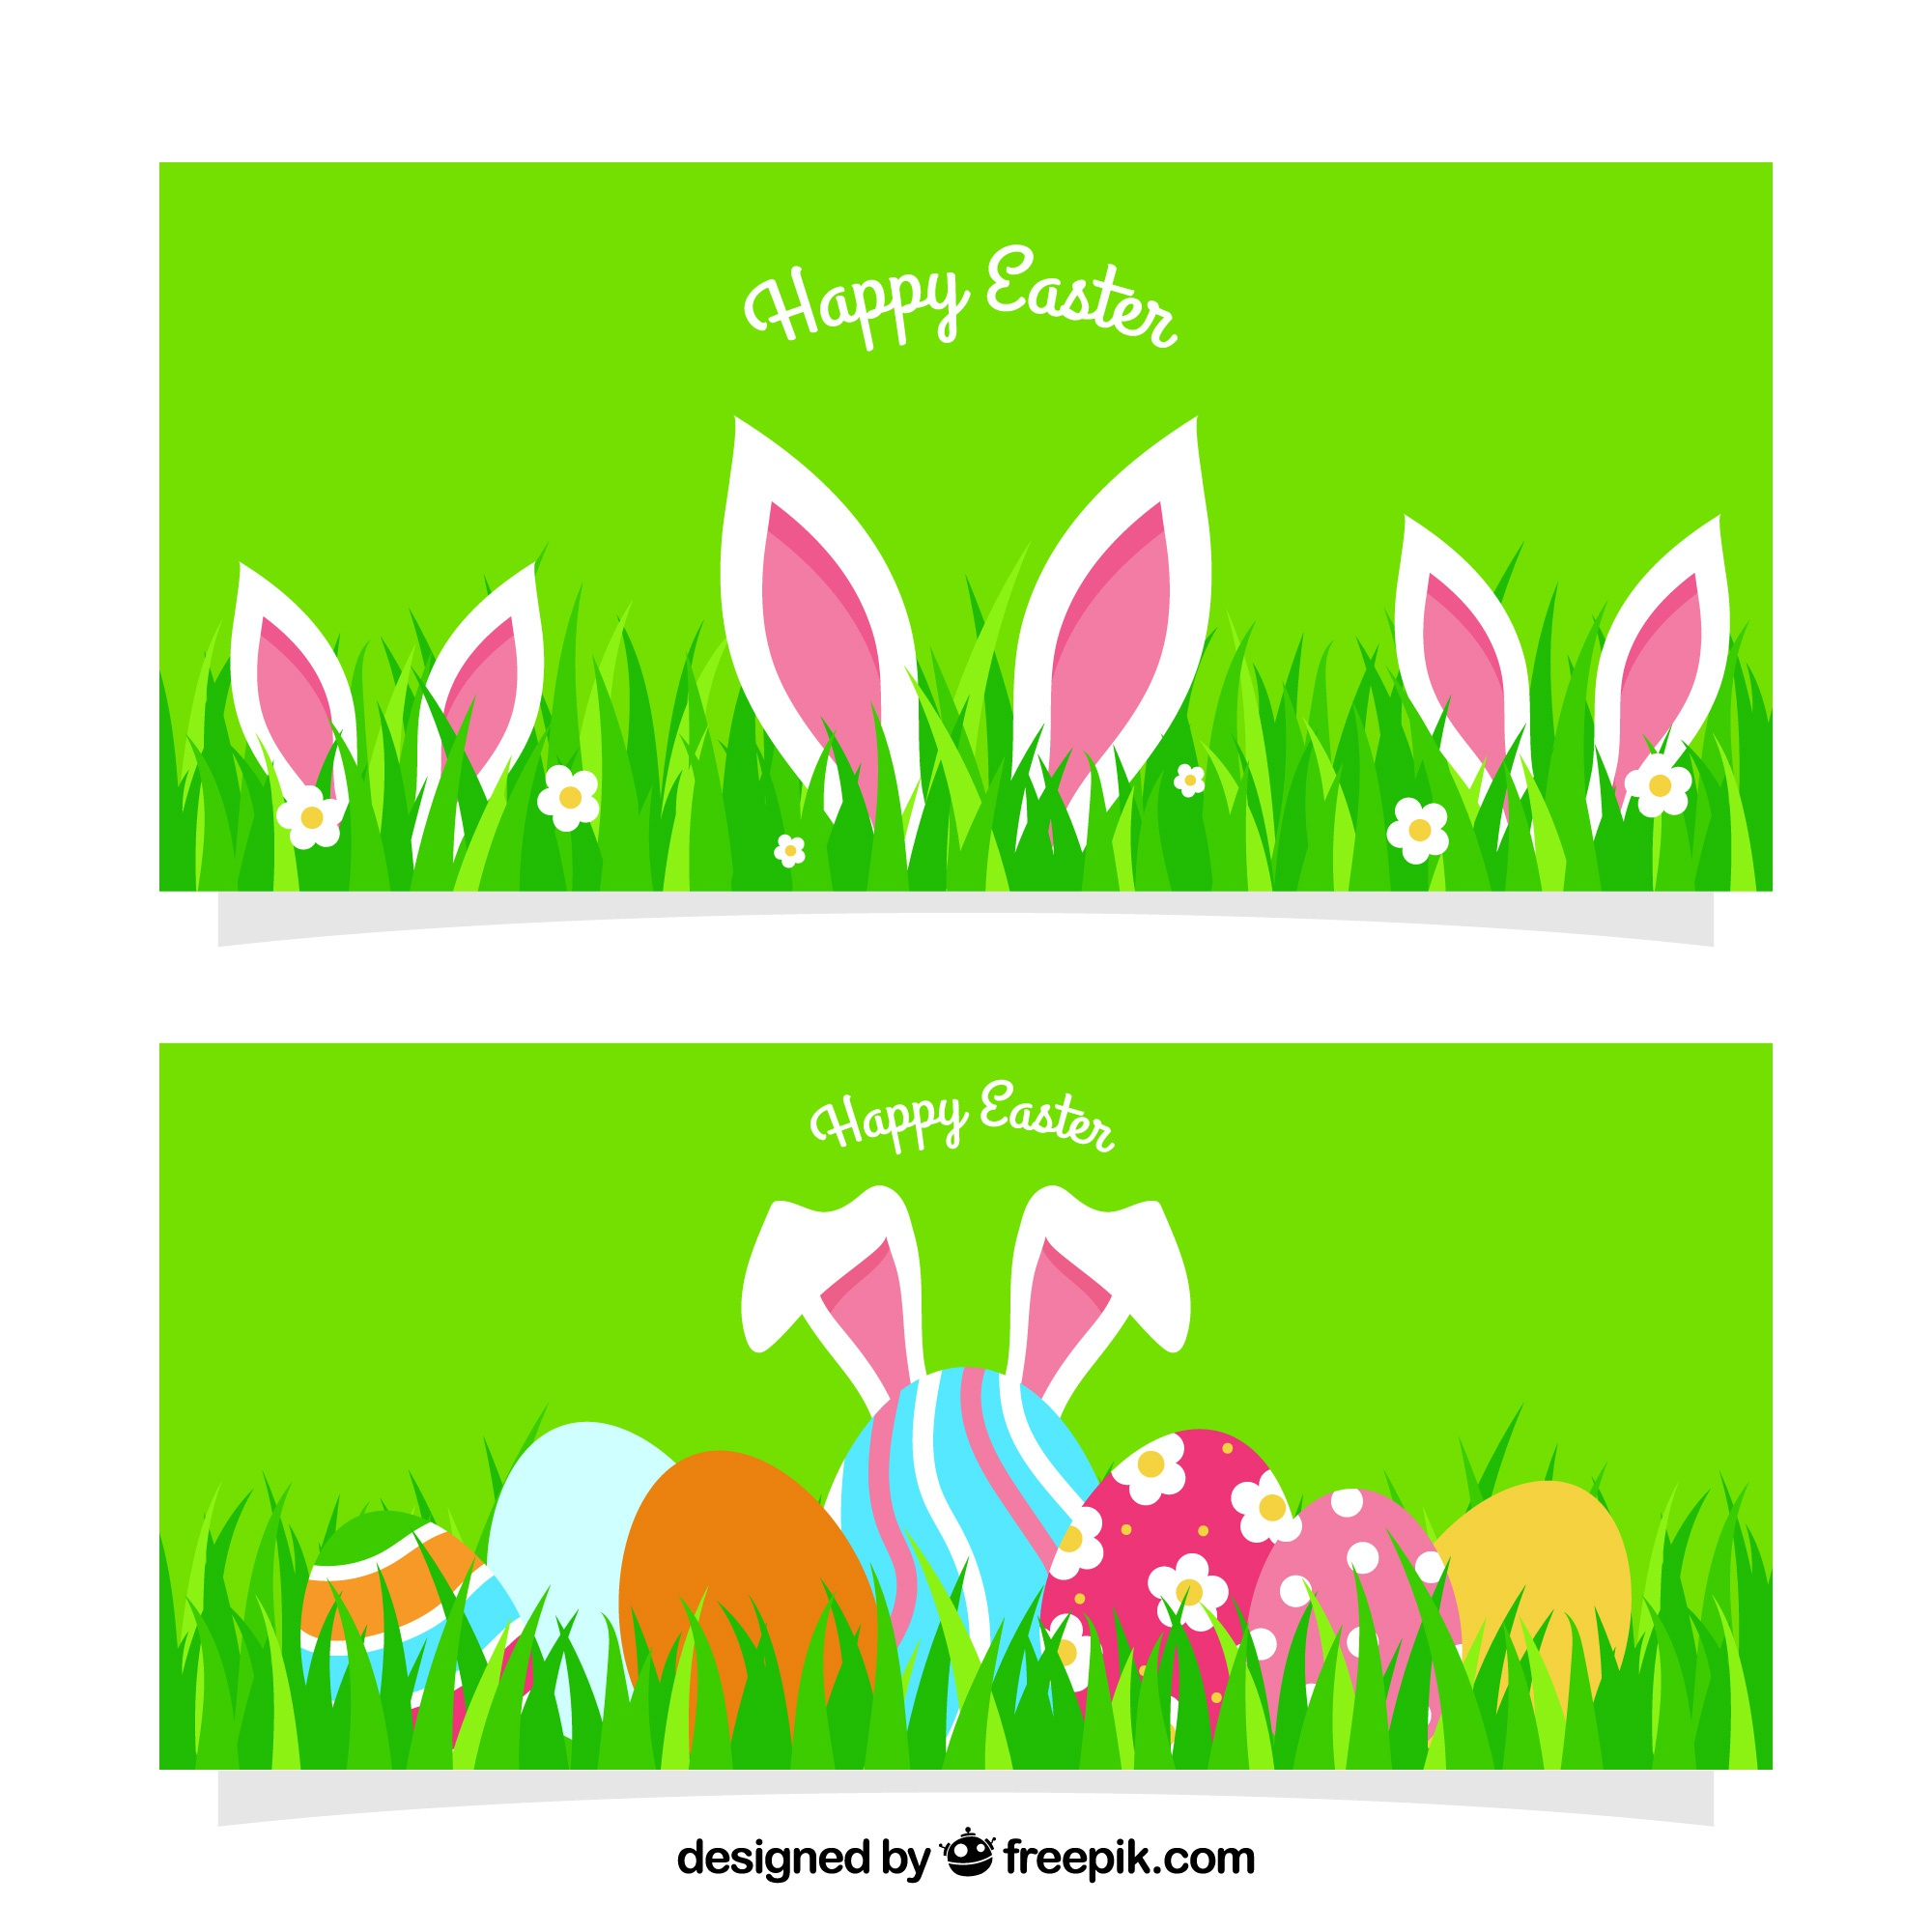 Flat easter banners with rabbit ears and eggs